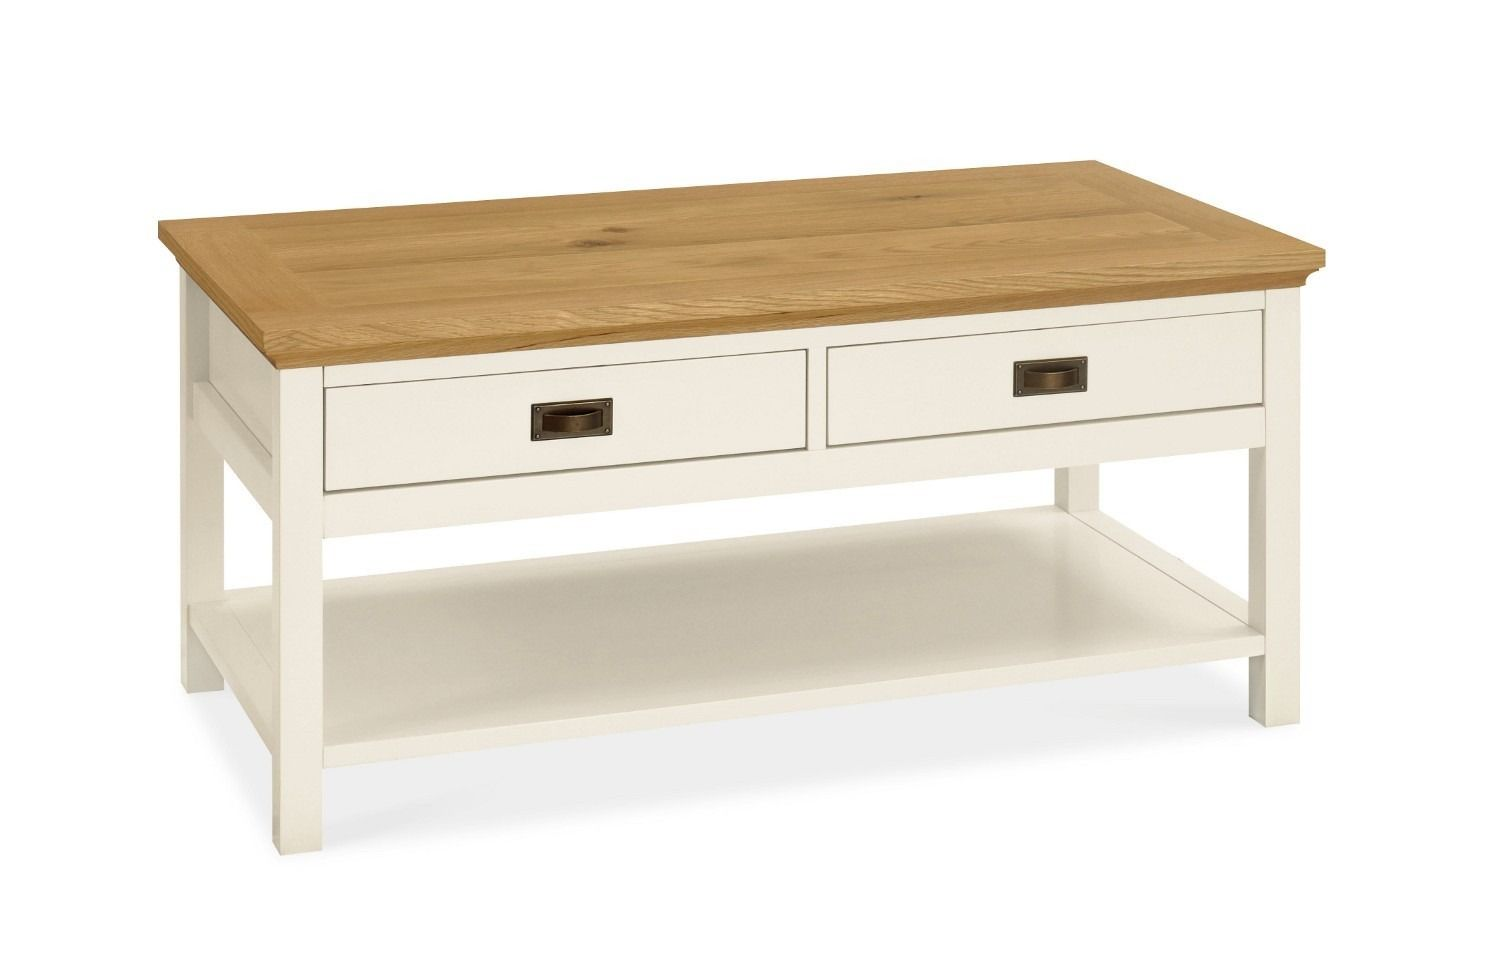 Hampshire Two Tone Coffee Table With Drawers Coffee Tables Lounge Living Buy Coffee Table Cheap Coffee Table Coffee Table [ 969 x 1500 Pixel ]